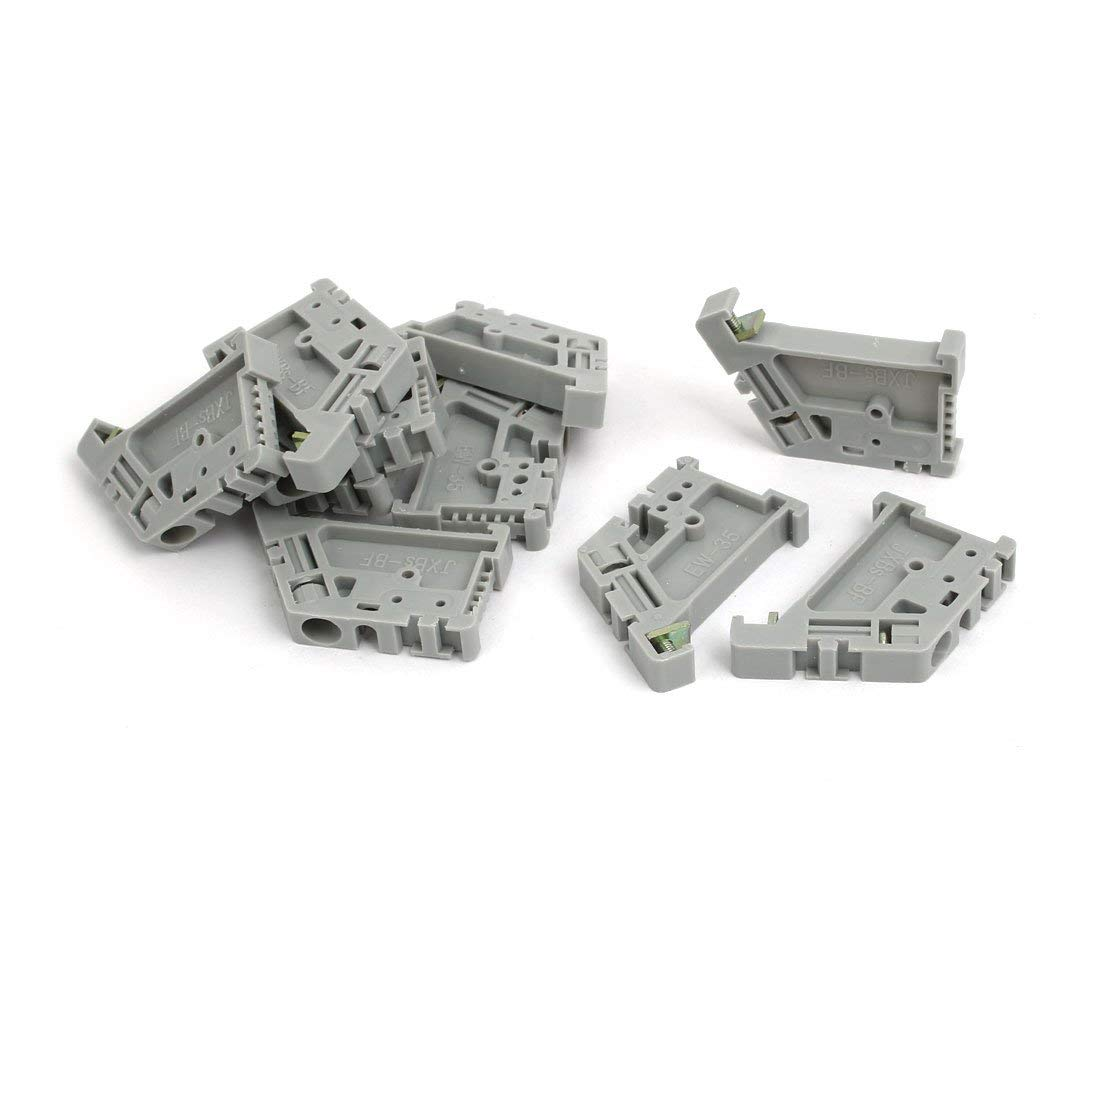 uxcell 10pcs DIN Rail Mount Guide Support Fixing Terminal Block